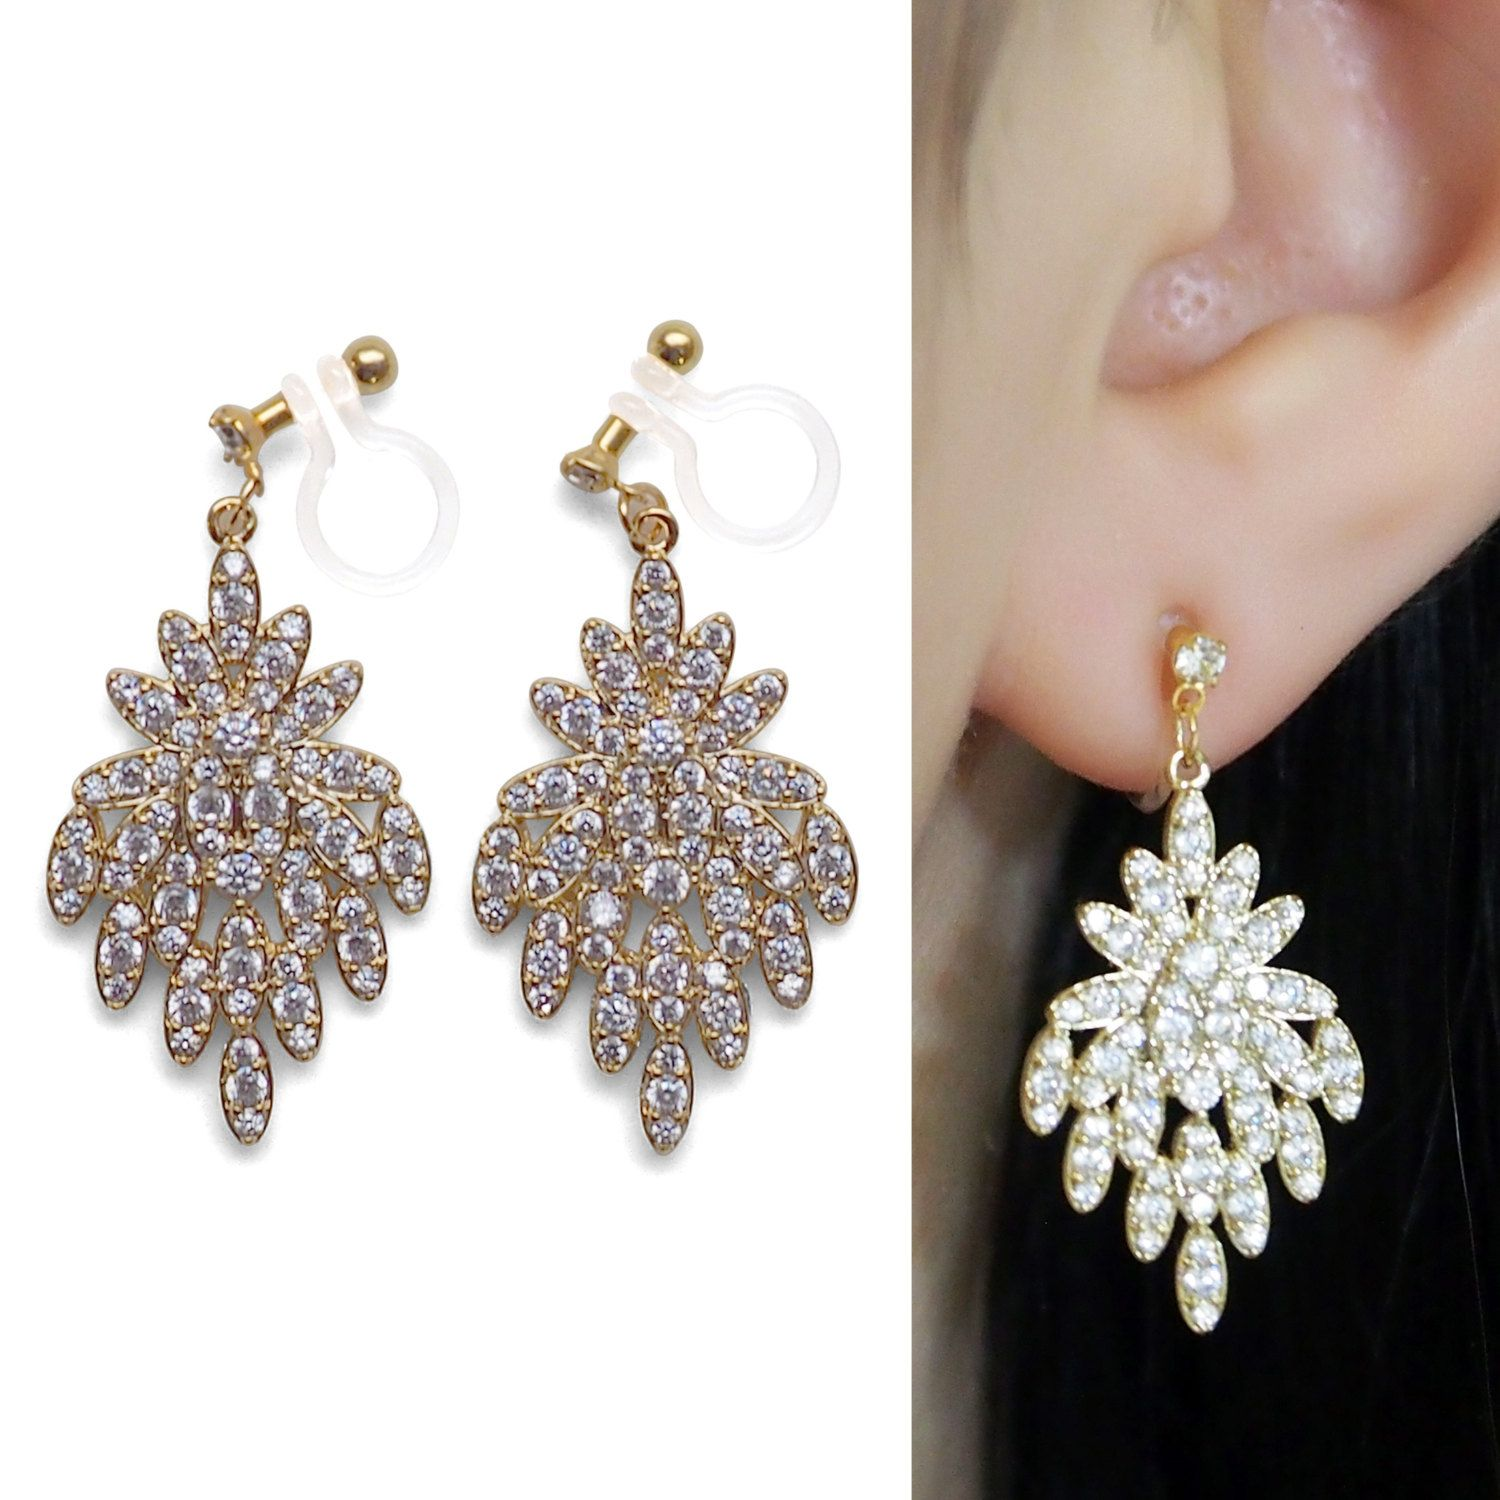 Gold Bridal Pave Invisible Clip on Earrings Wedding CZ Crystal – Clip on Earrings Chandelier